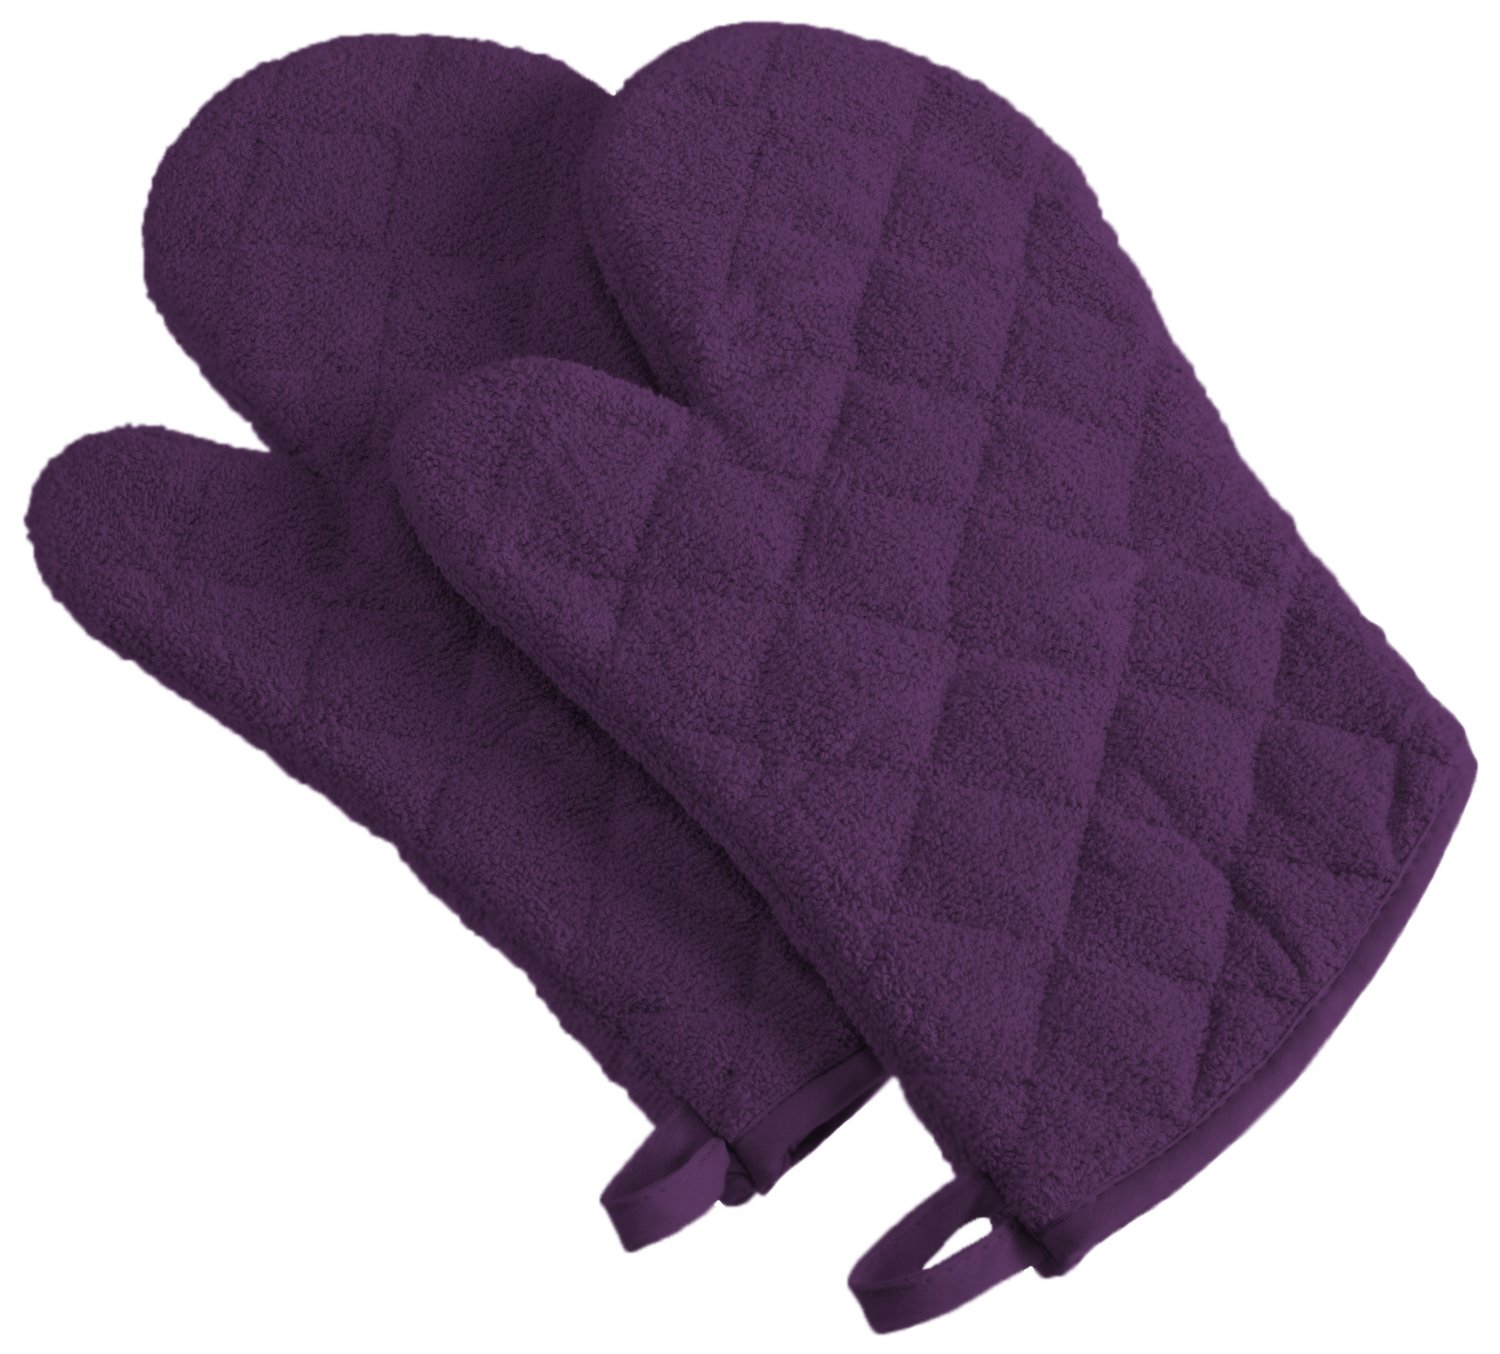 DII 100% Cotton, Machine Washable, Everyday Kitchen Basic Terry Ovenmitt Set of 2, Eggplant